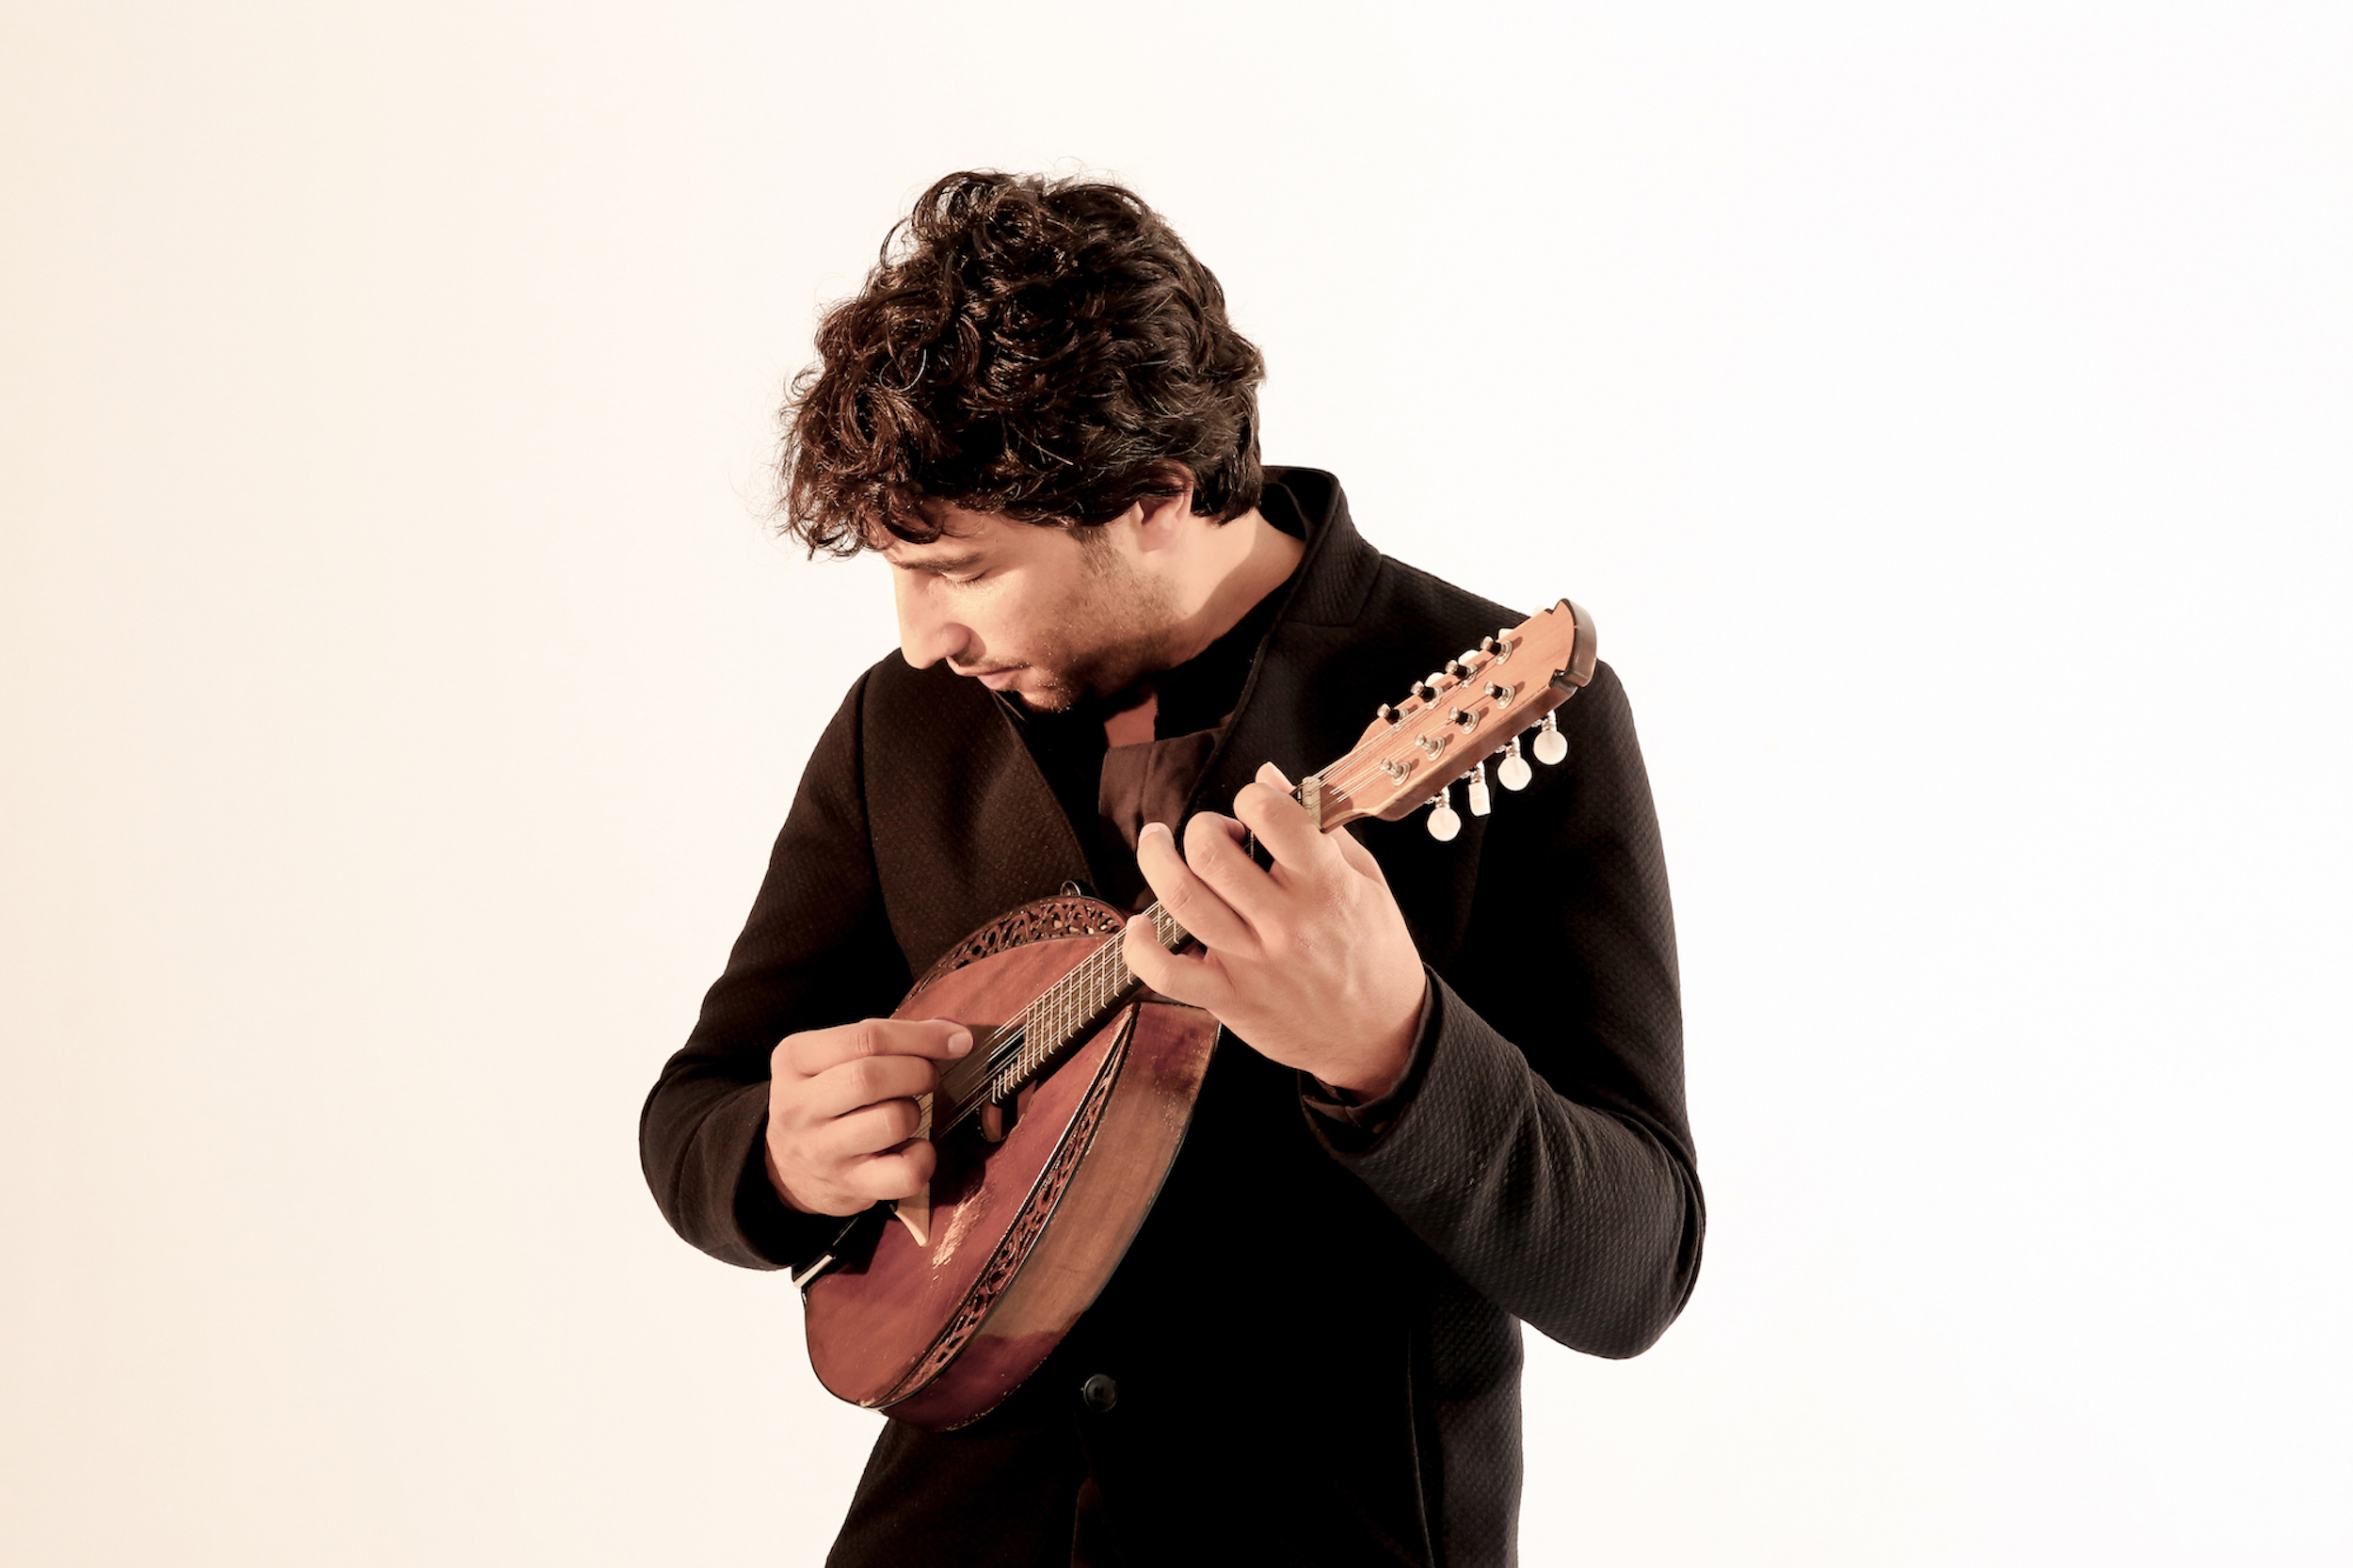 Mandolinist Avi Avital performs Thursday evening at Tanglewood and Friday evening at the Rockport Chamber Music Festival with the Venice Baroque Orchestra.